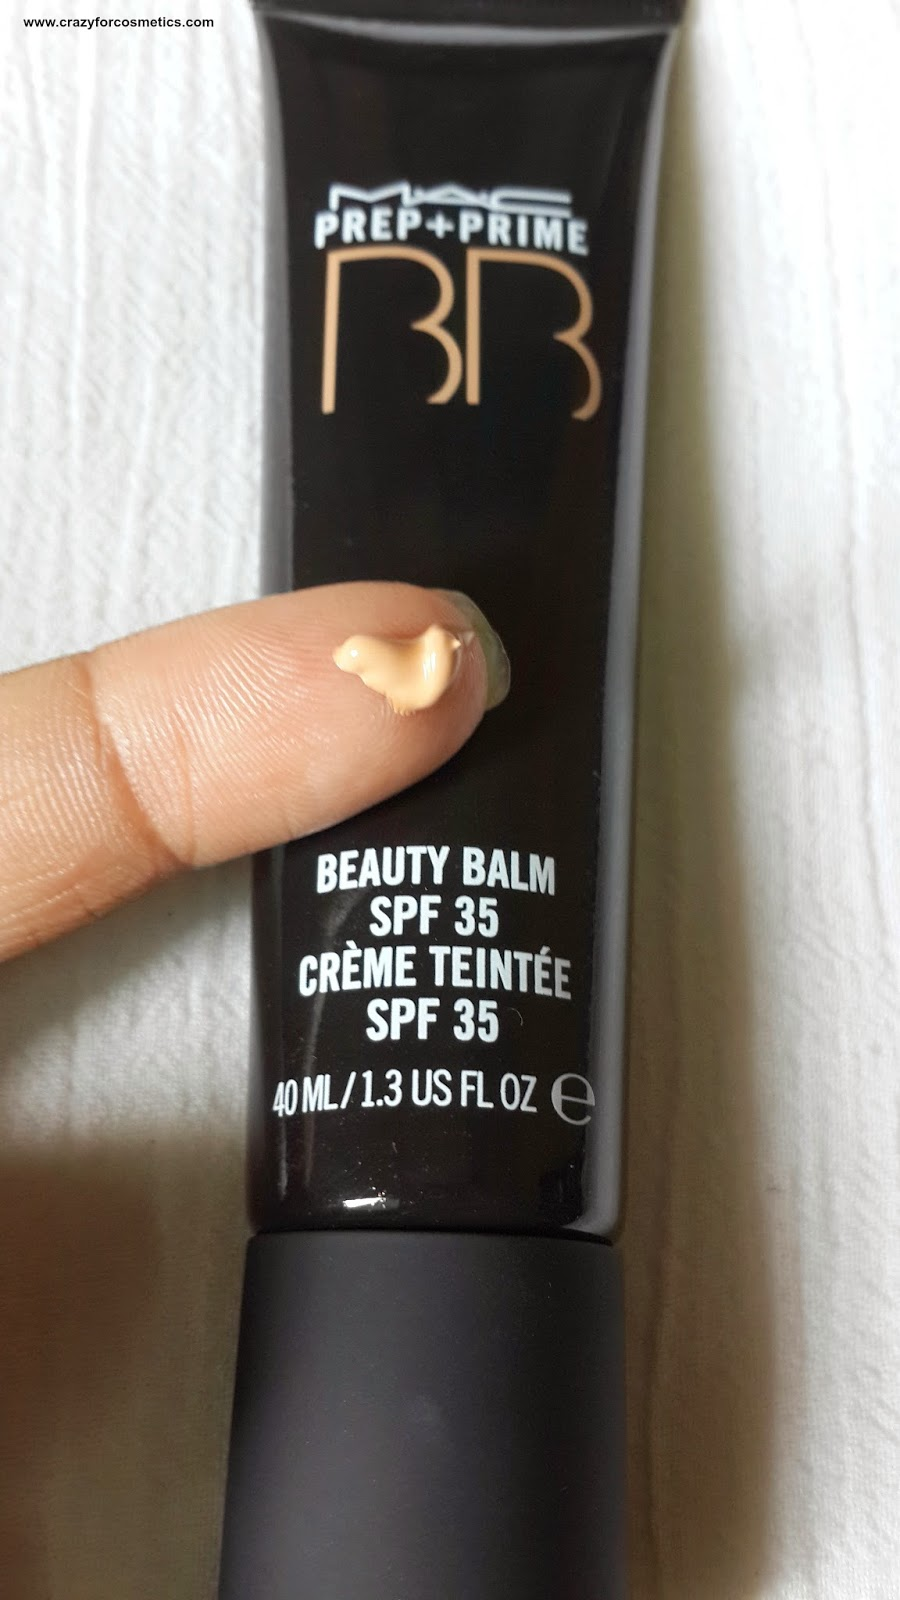 mac bb cream reviews, mac bb cream,mac bb cream India, mac bb cream price india